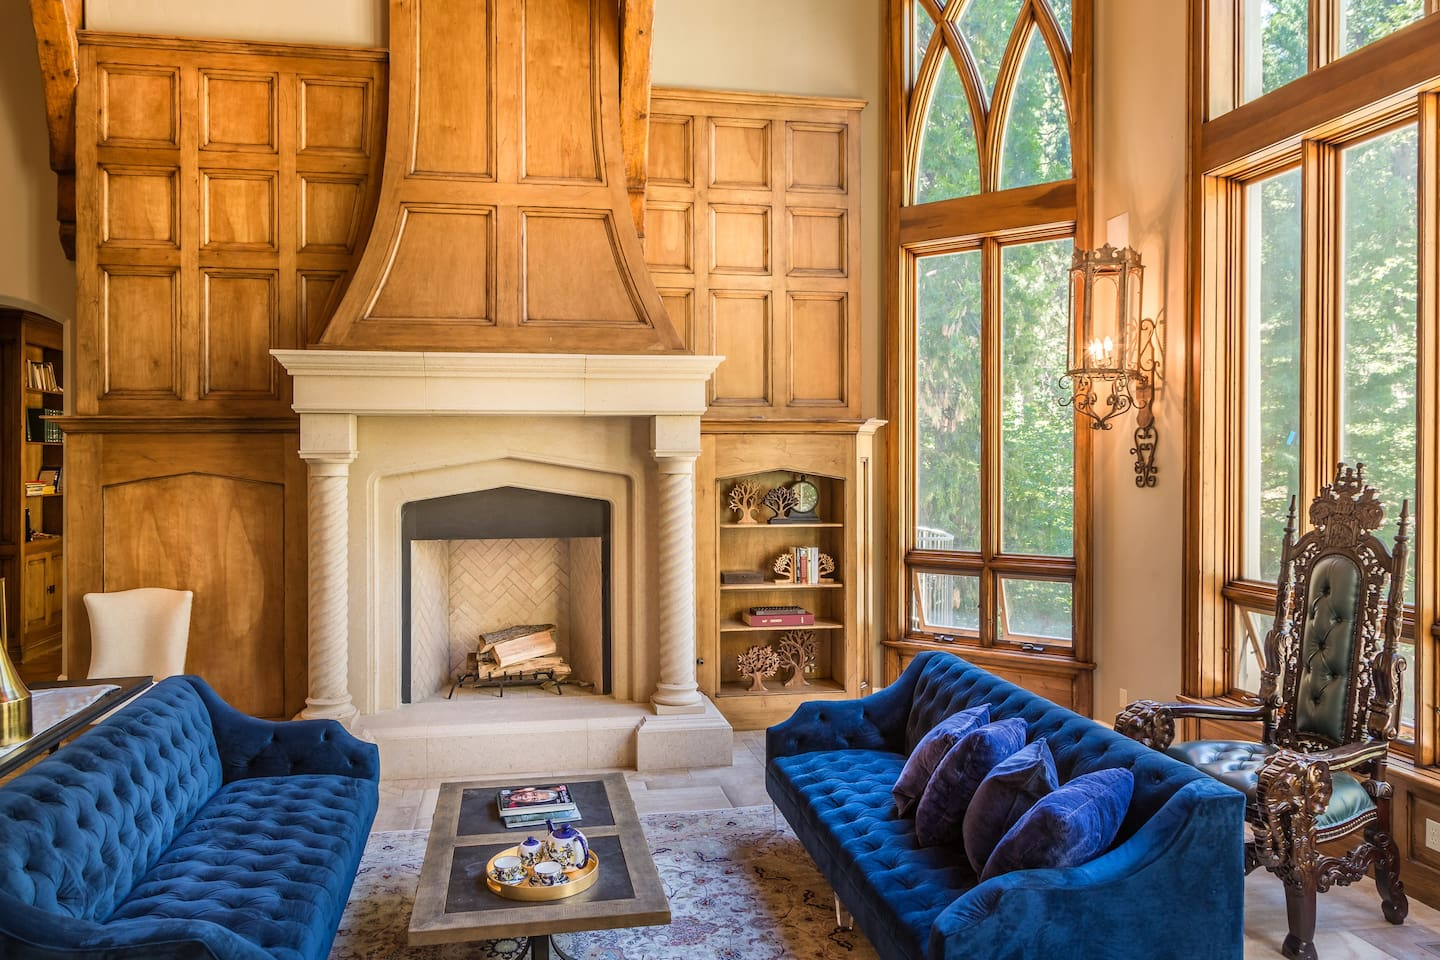 Living Room w Fireplace and floor-to-ceilings windows - Castle In The Forest